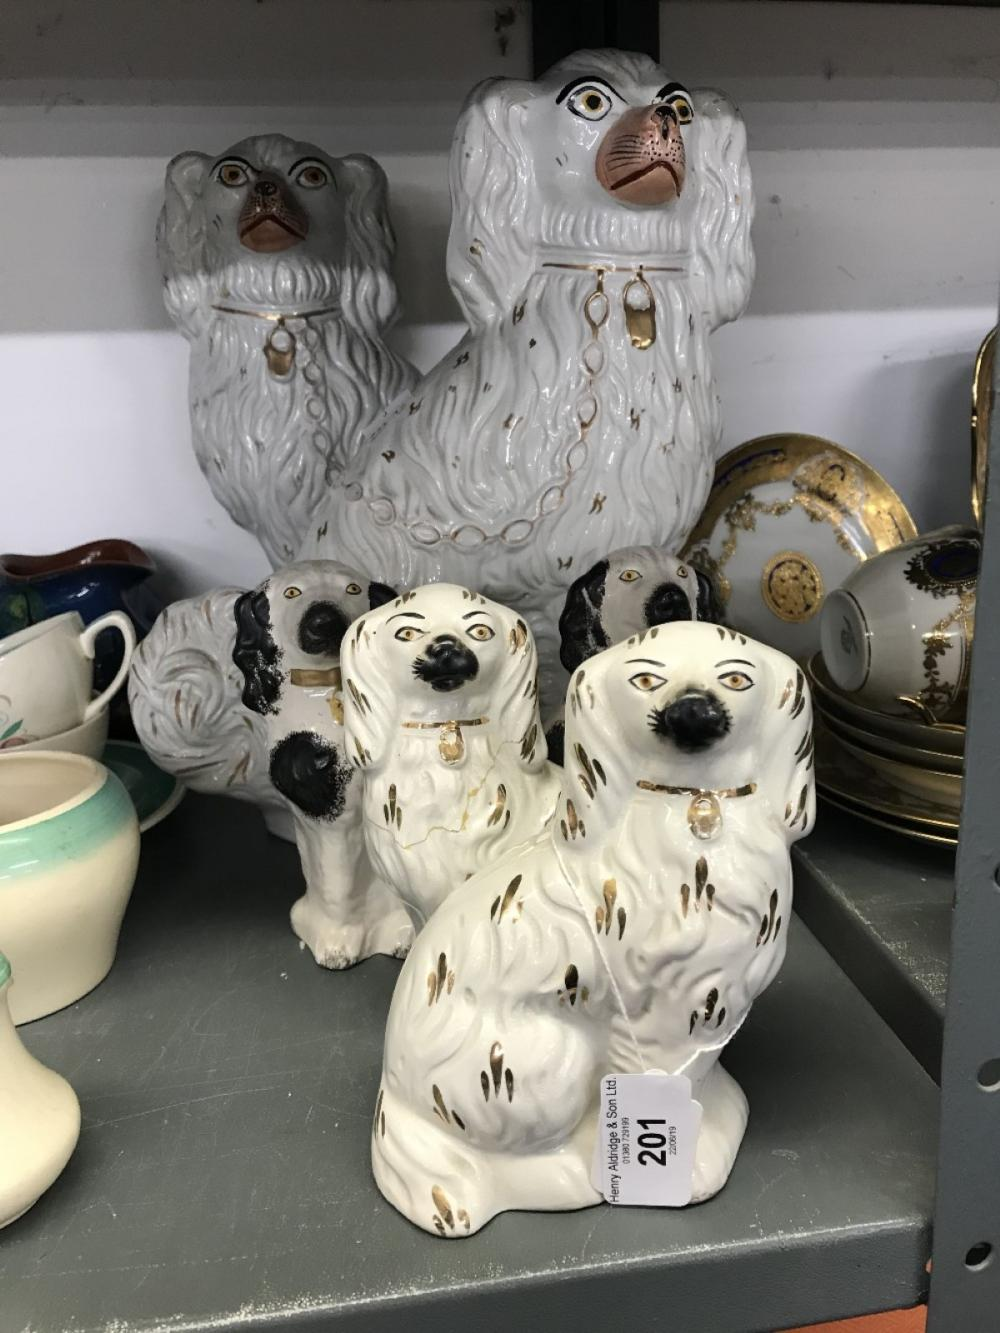 19th/early 20th cent. Ceramics: Staffordshire comfort dogs with white gilt decoration - a pair. 12in